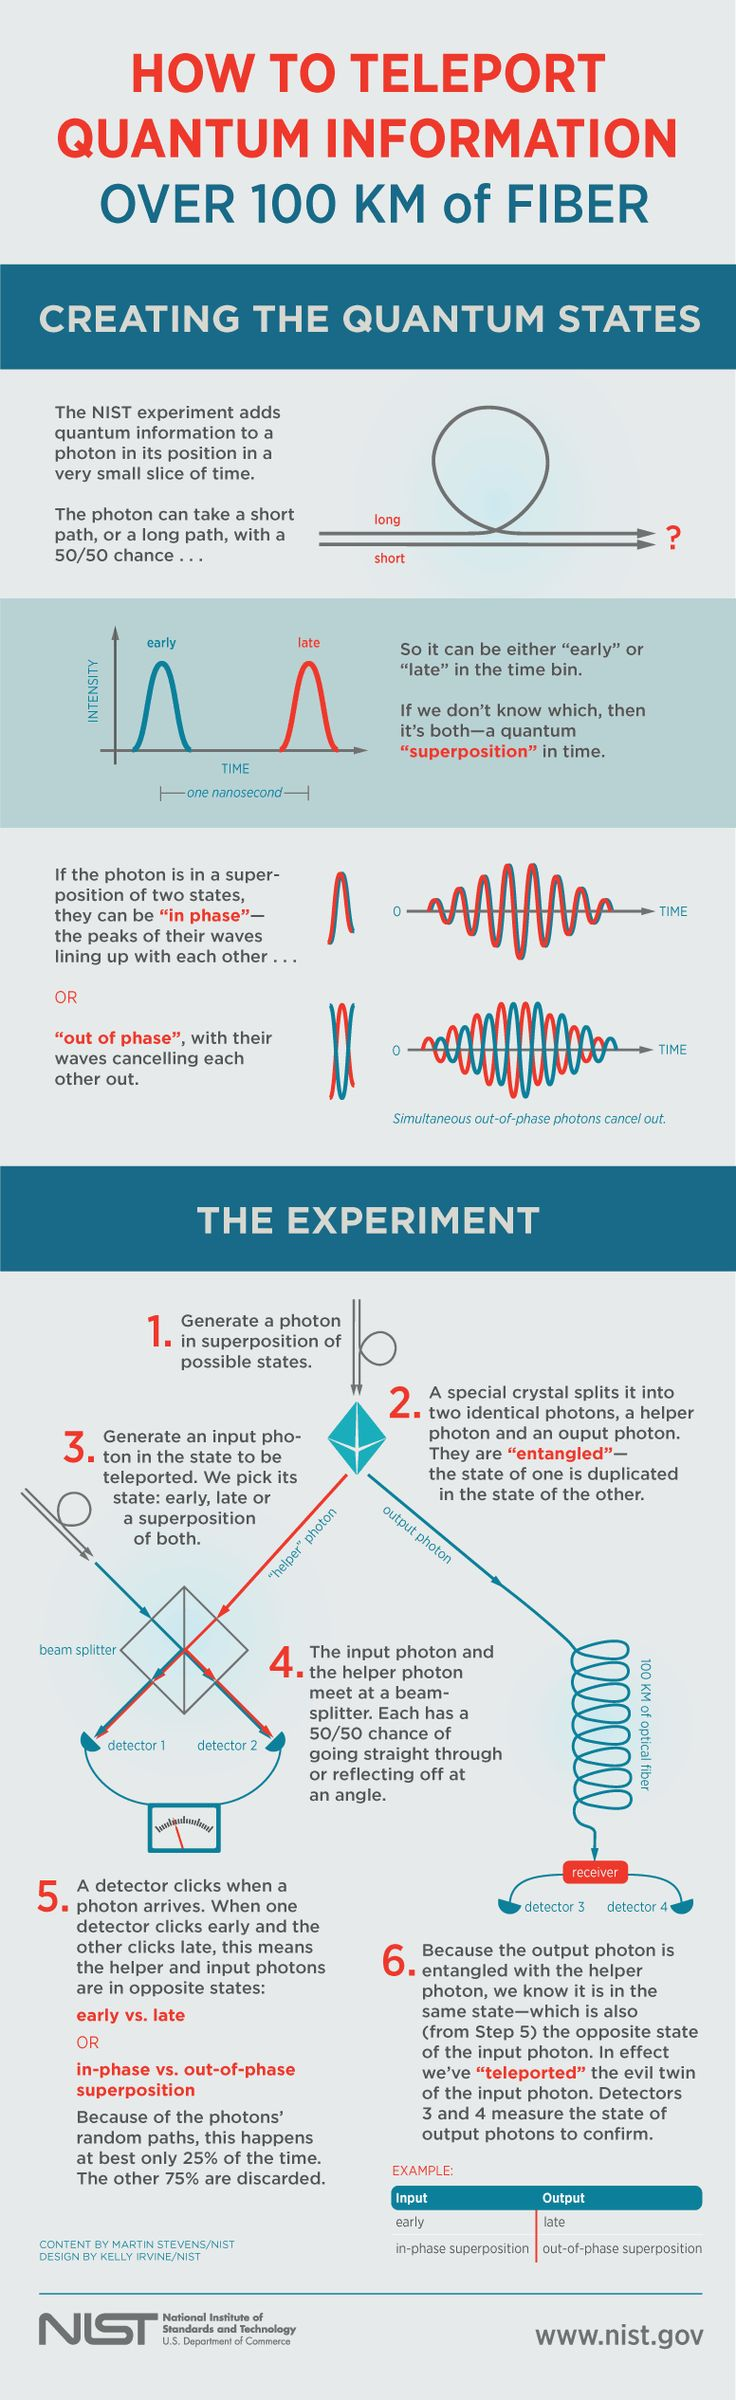 Researchers in the US have successfully teleported information encoded into particles of light over 100 kilometres of optical fibre, smashing the previous distance record of 25 km! #STEM #Infographic on quantum teleportation.